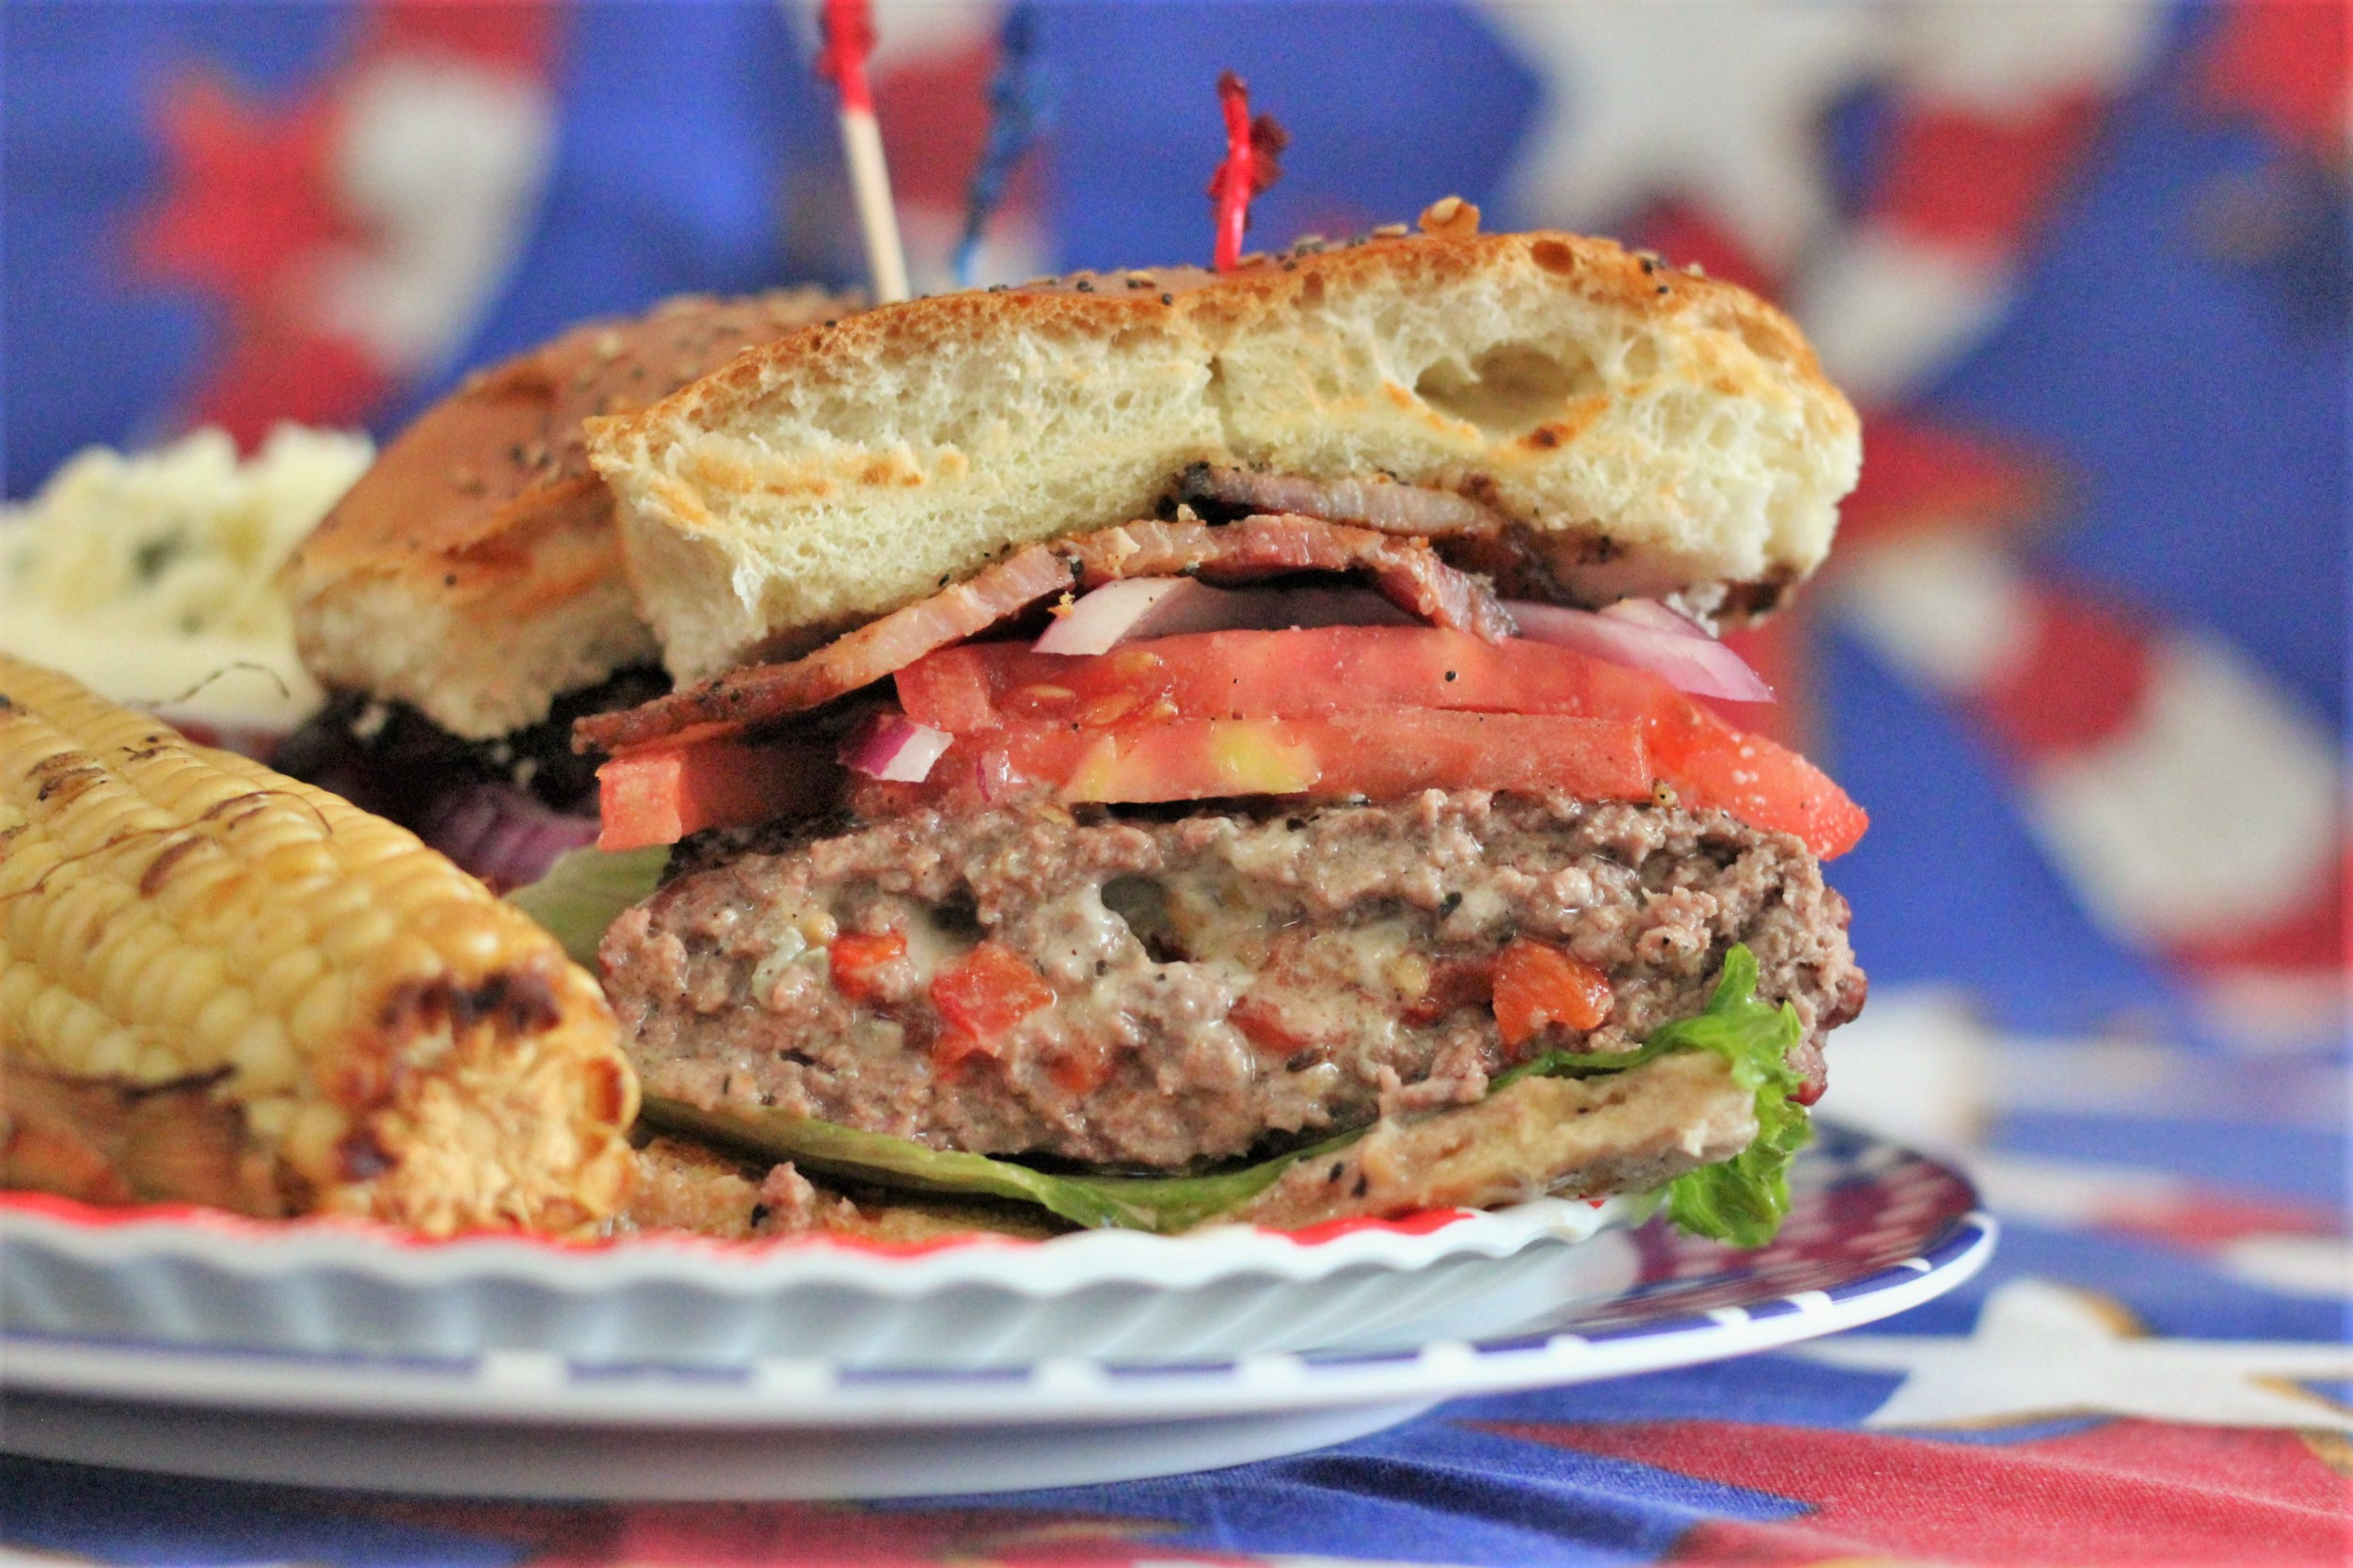 blue cheese stuffed burger on plate with grilled corn.